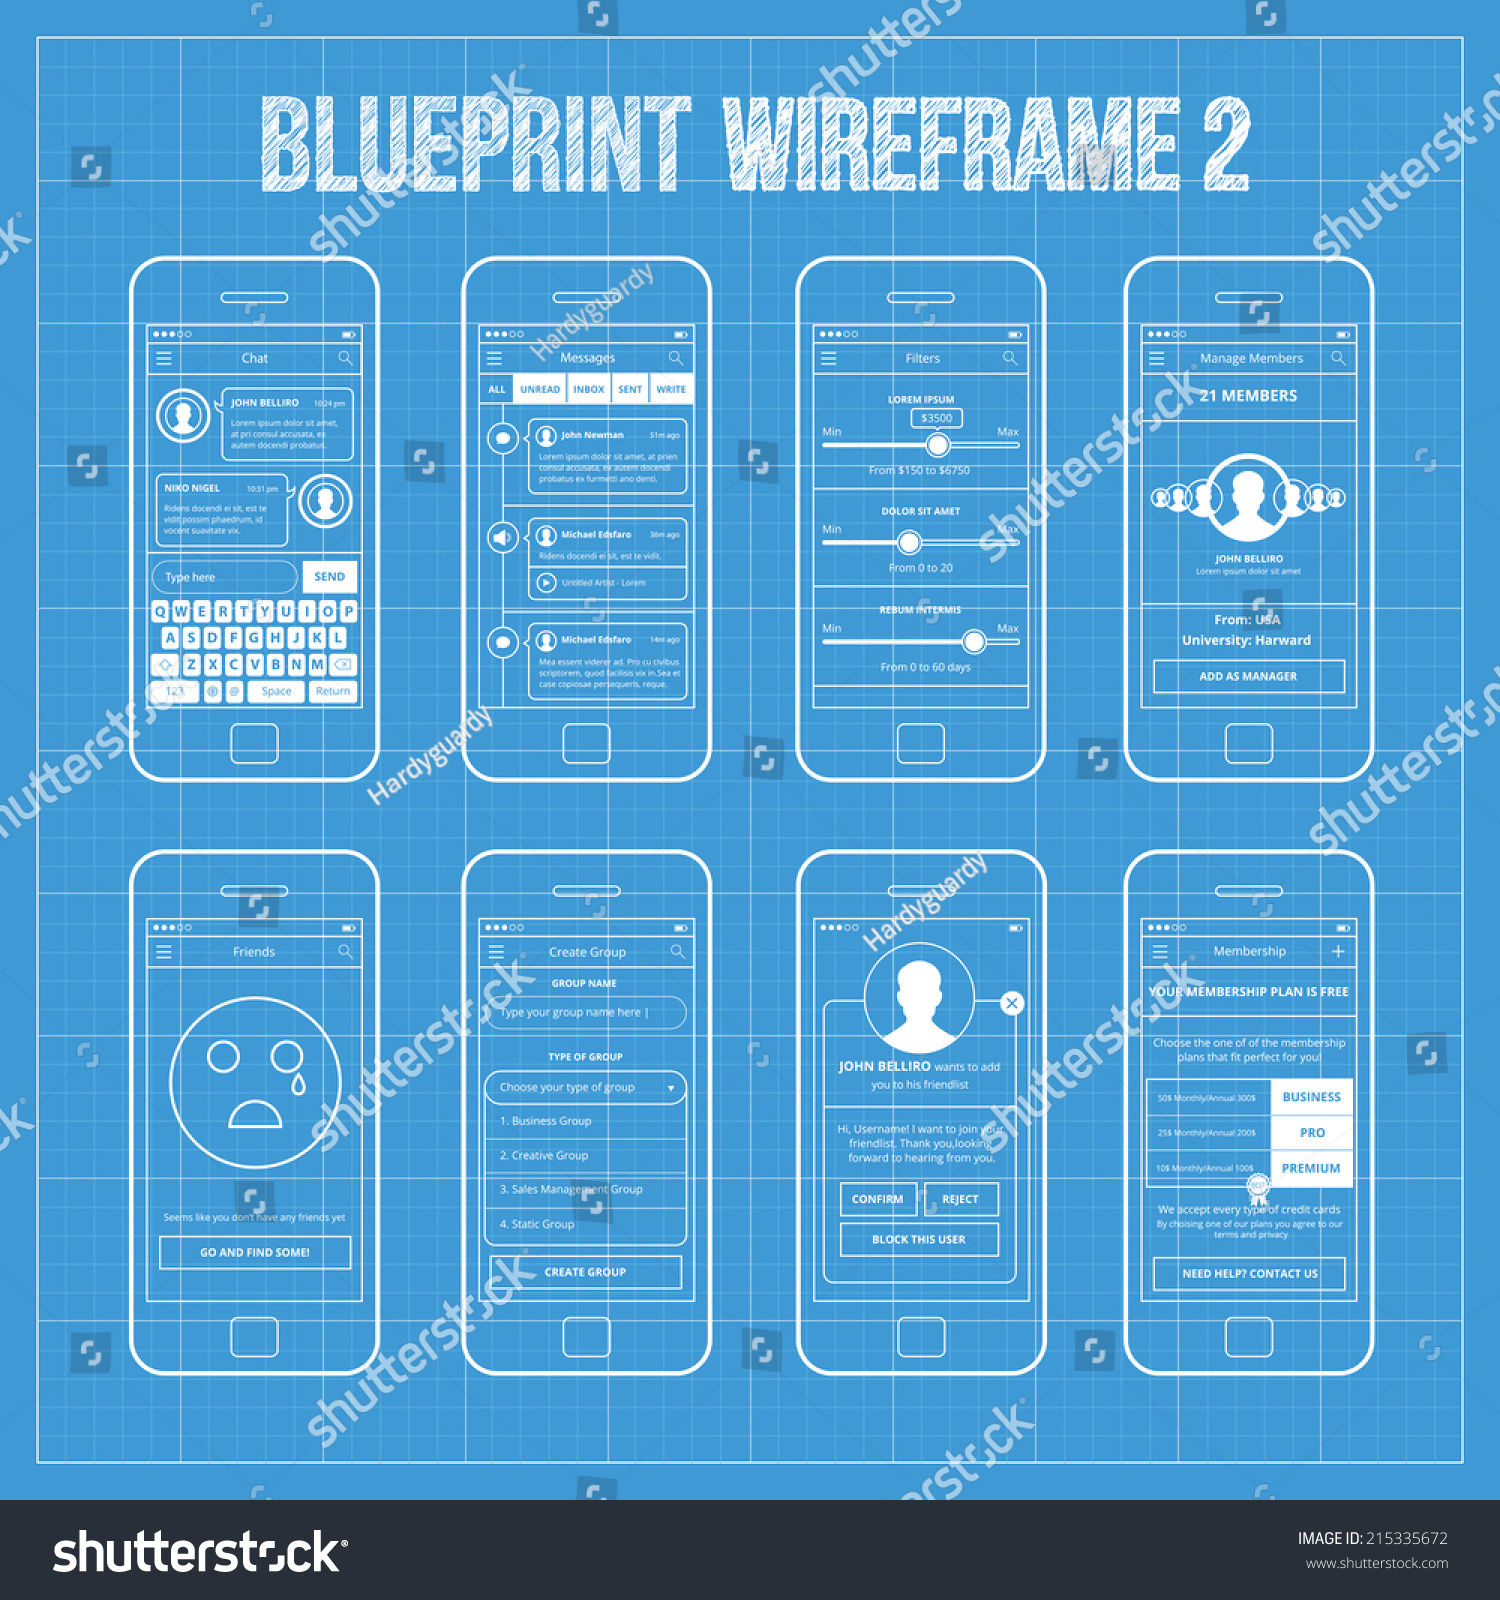 Royalty free blueprint wireframe mobile app ui kit 215335672 blueprint wireframe mobile app ui kit 2 chat screen messages screen filters screen manage members screen friends screen create group screen malvernweather Choice Image